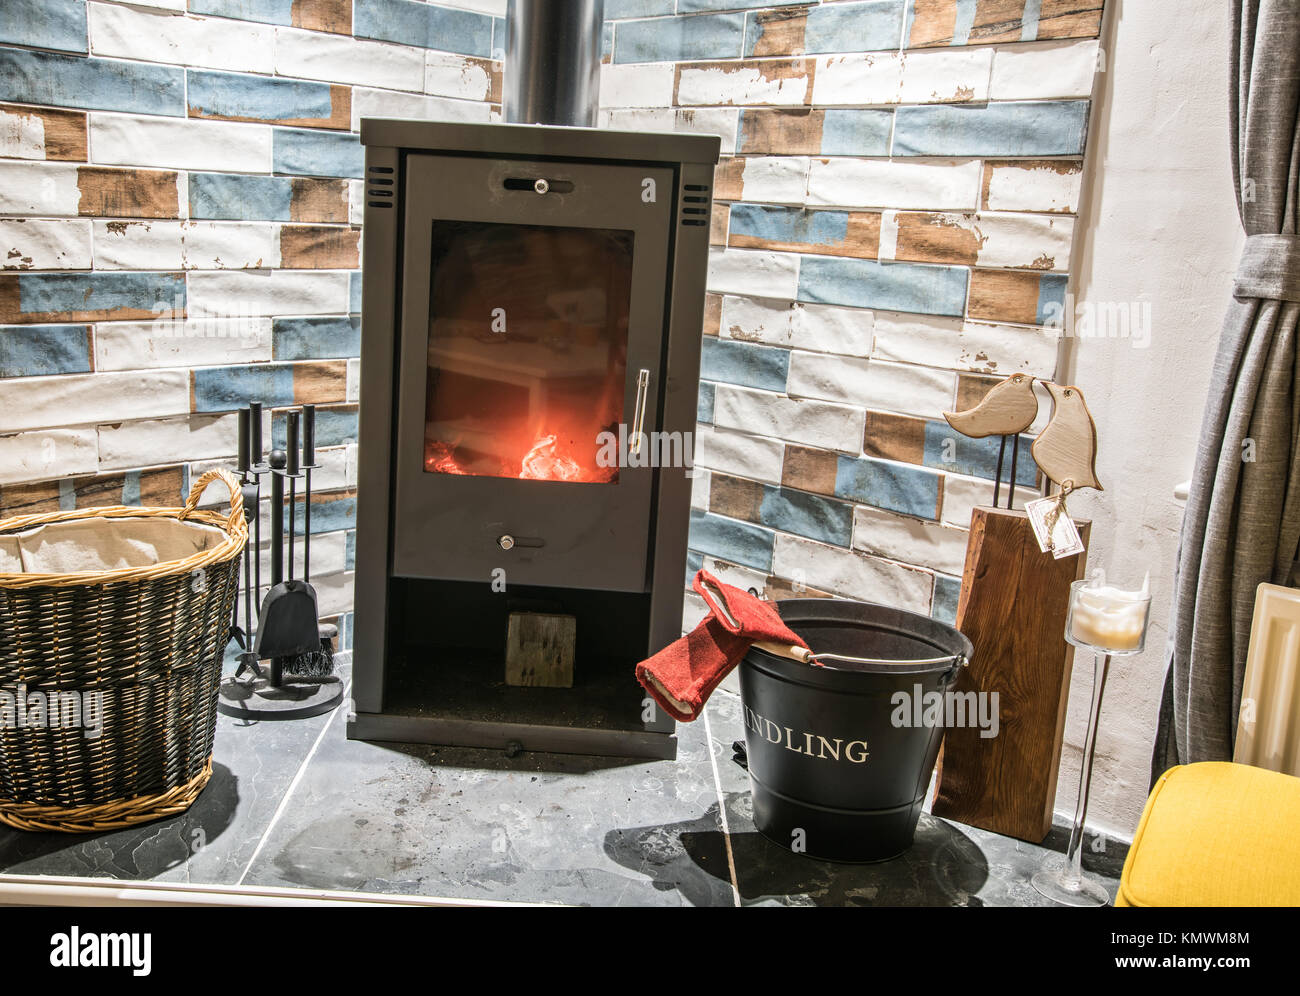 wood burning stoves stock photos wood burning stoves stock images alamy. Black Bedroom Furniture Sets. Home Design Ideas